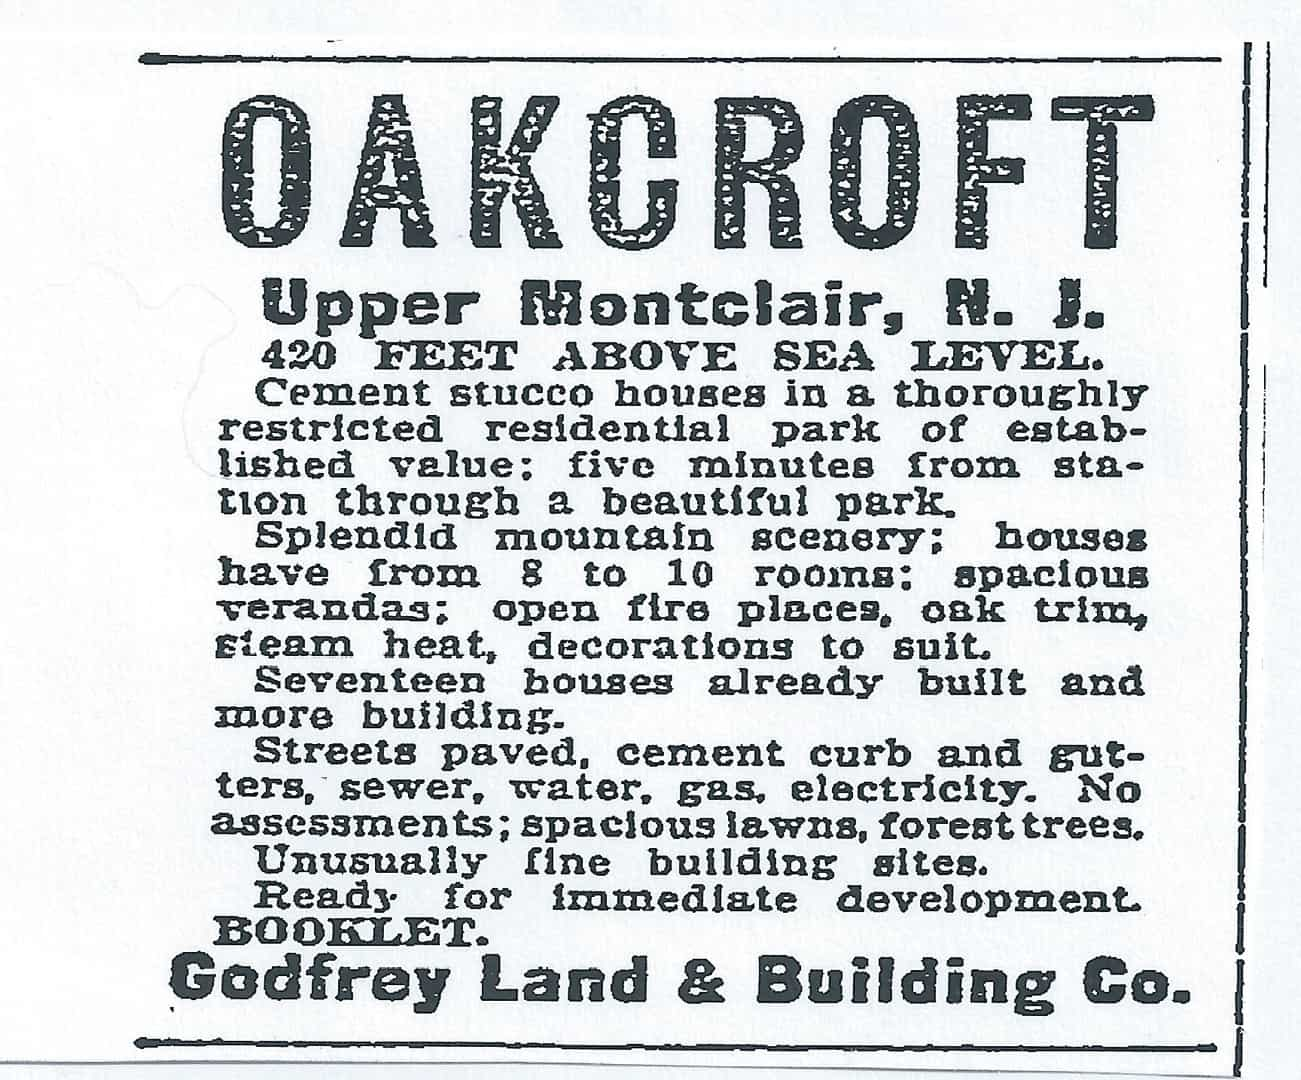 Newspaper classified advertisement promoting Oakcroft subdivision. The New York Times, April 24, 1910, pg. 17.